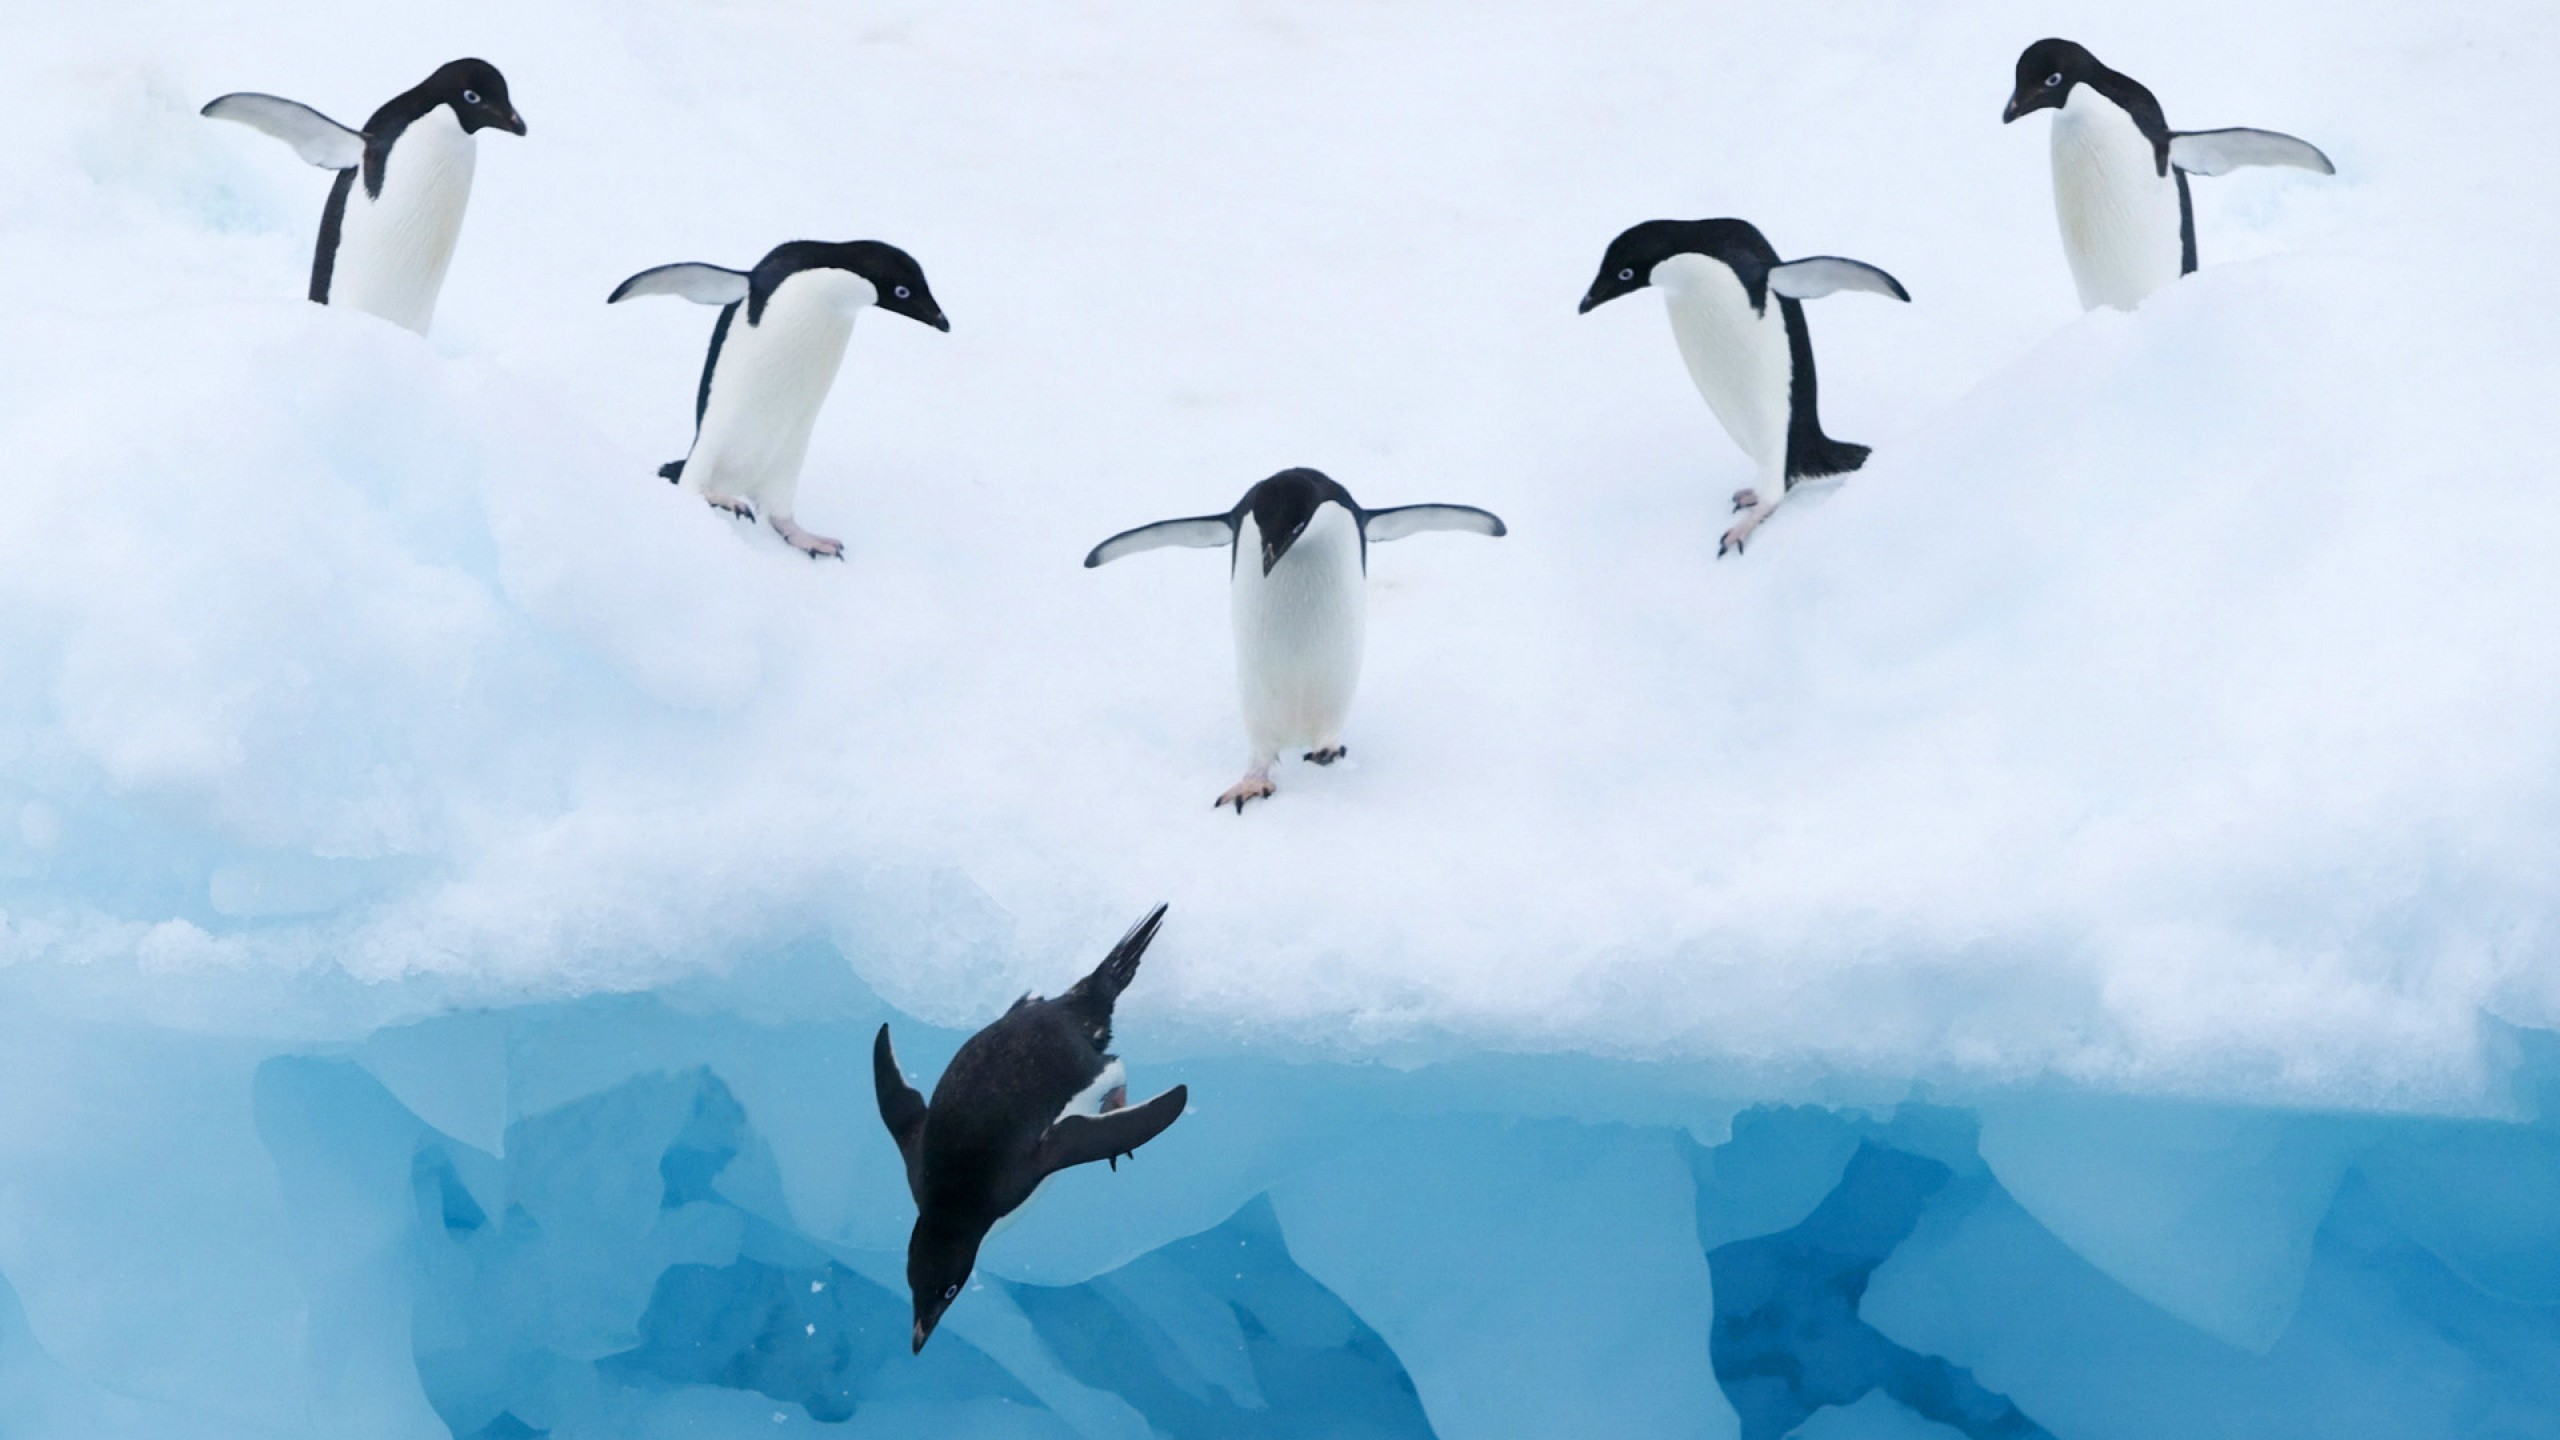 Birds Penguin In Antarctica Hd   Penguin In Cold Water 973604 2560x1440